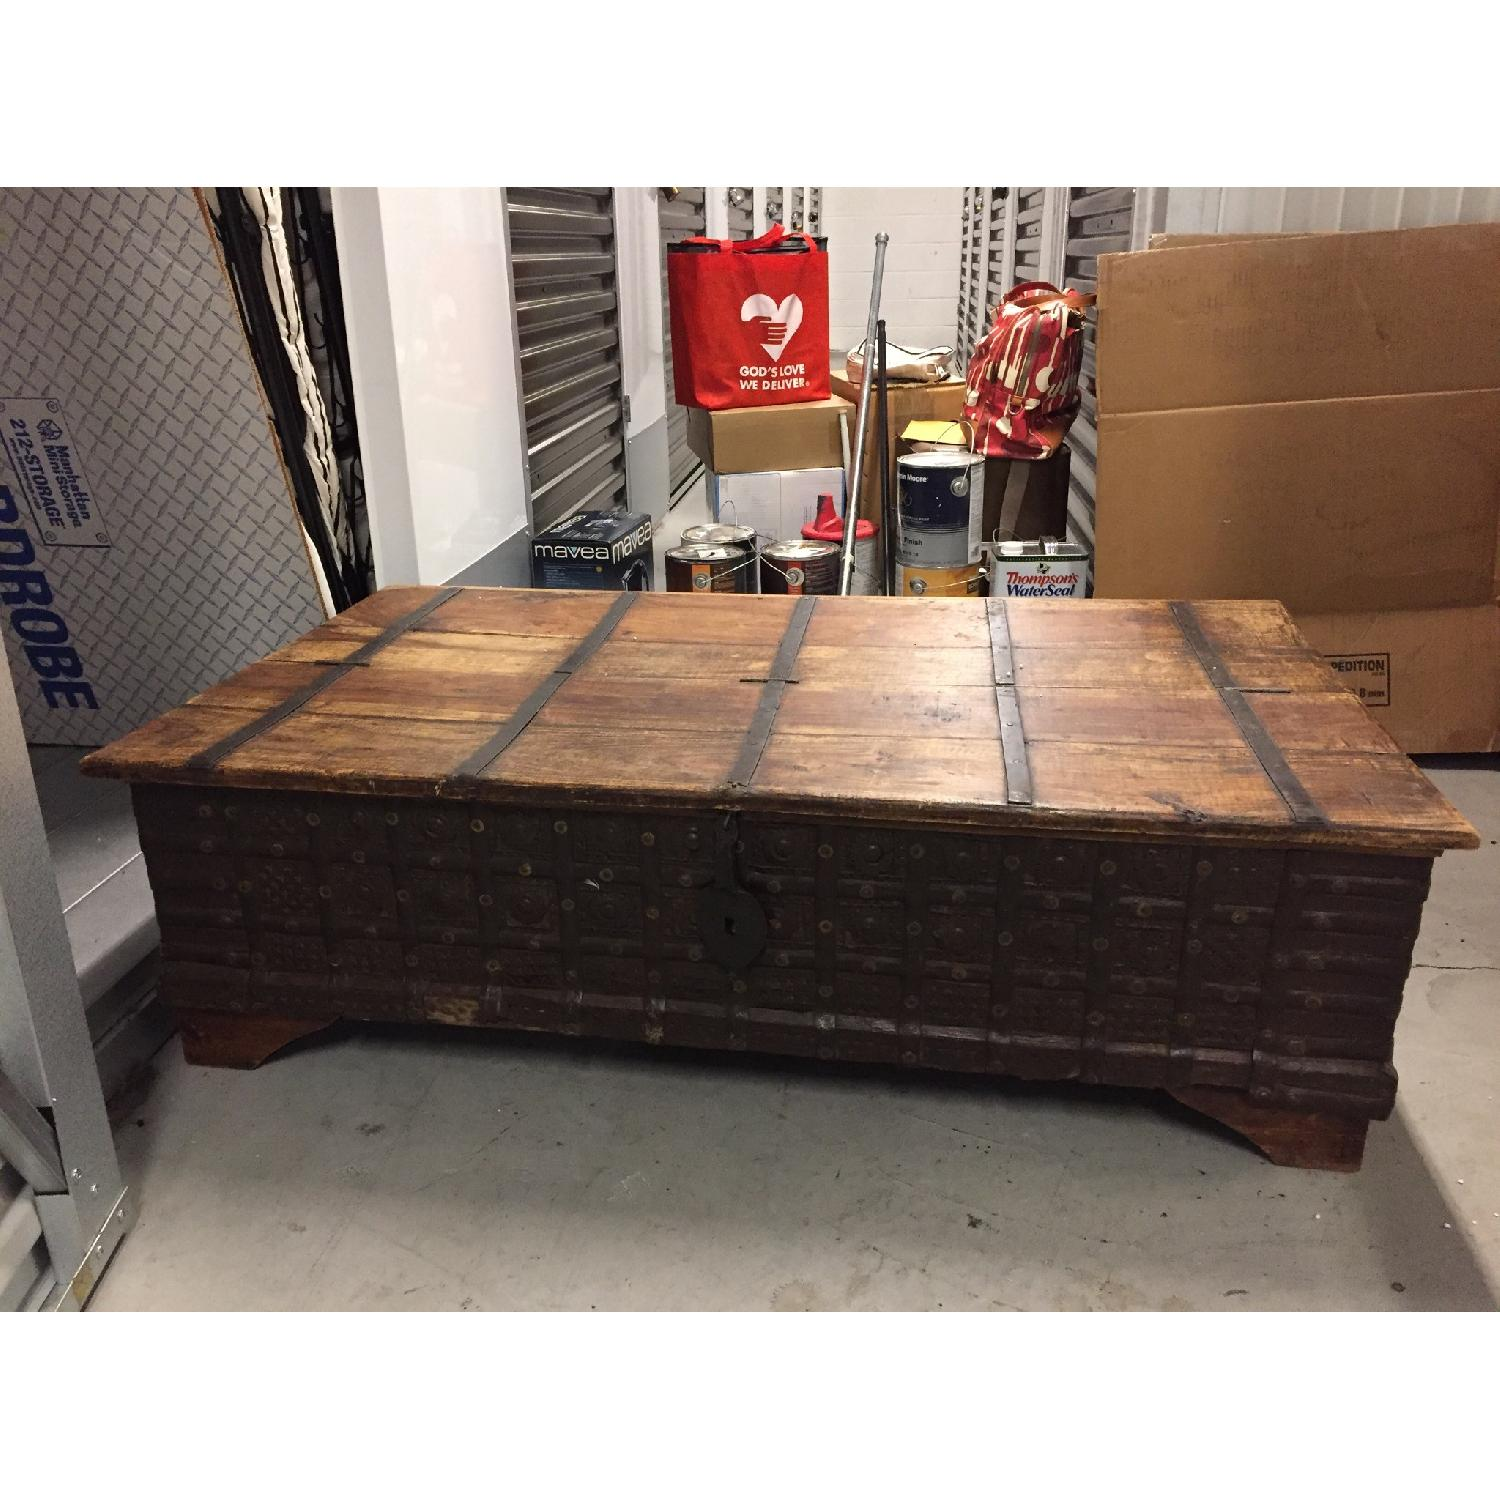 Vintage Import Coffee Table with Storage. - image-1